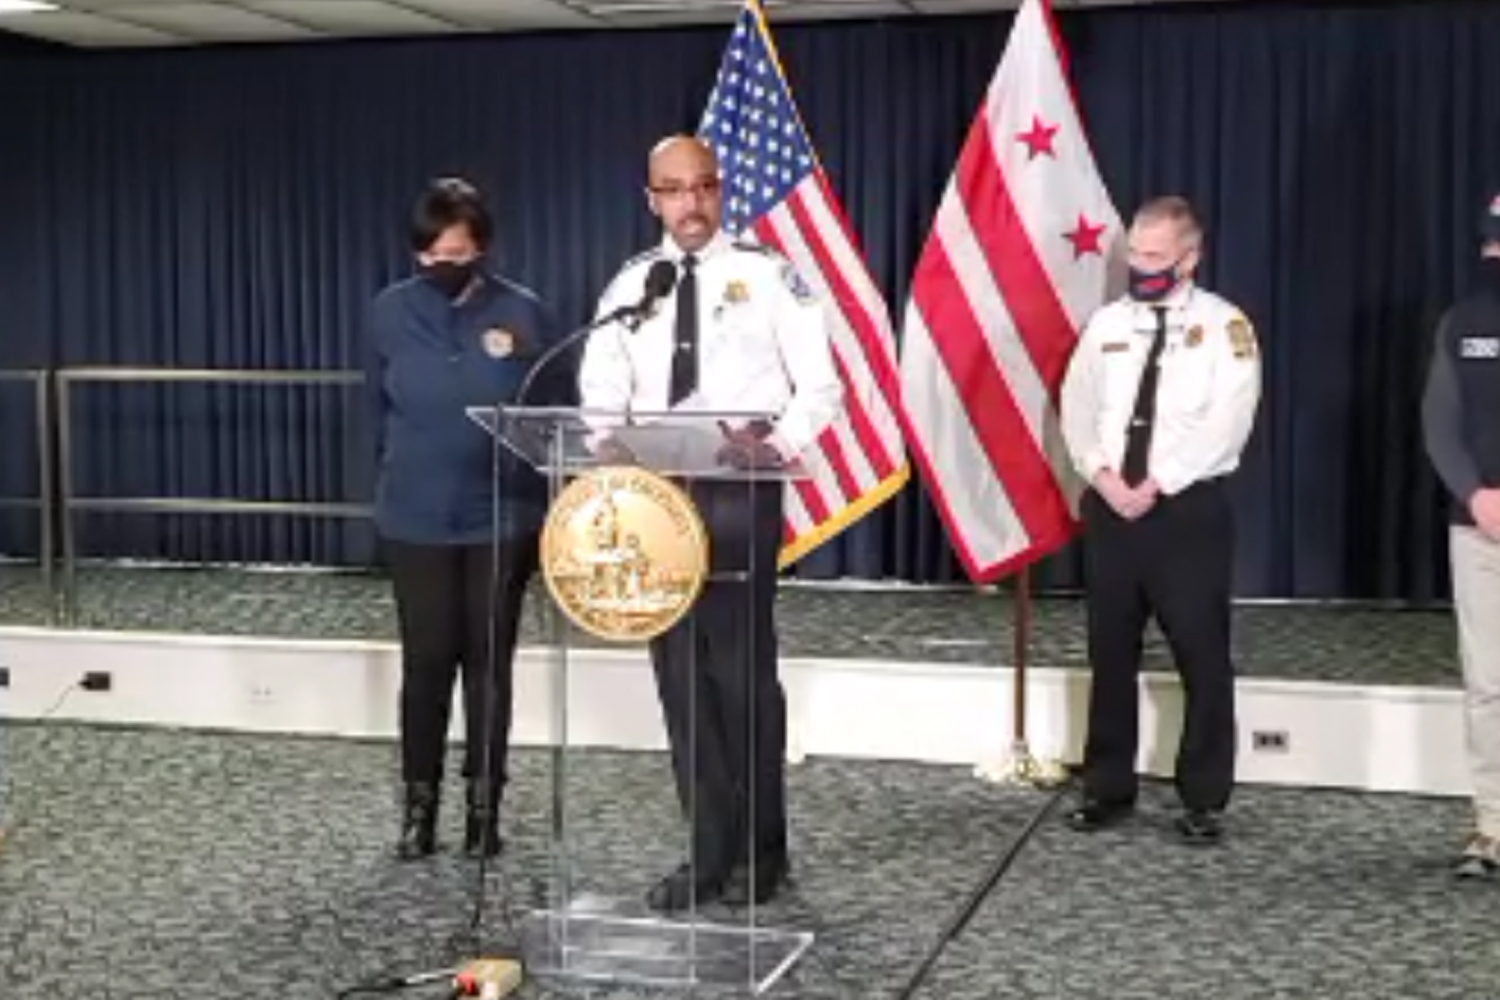 Chief Contee and @MayorBowser provide situational updates